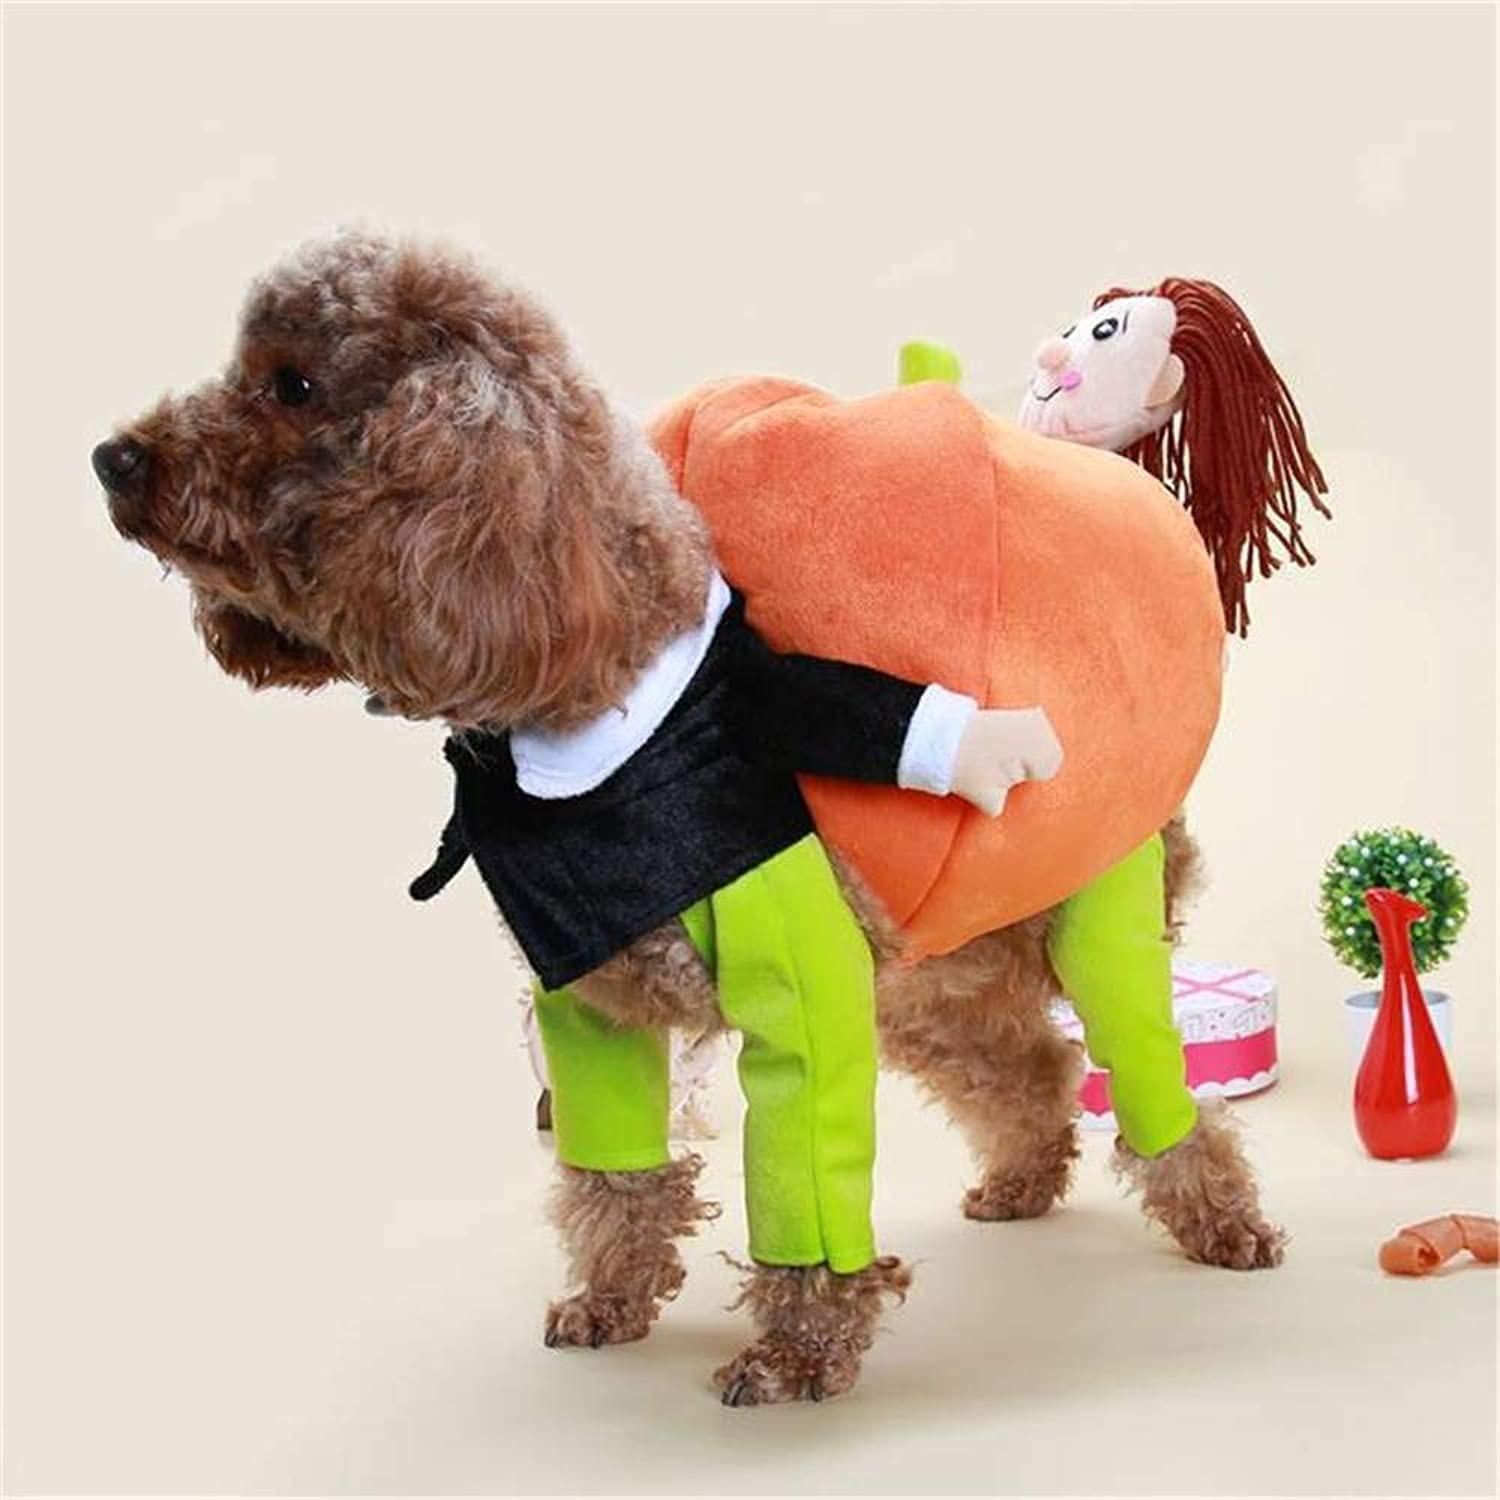 BFY Teddy Pet Dog Jacket Carrying Pumpkin Santa Claus Costume Party Clothes